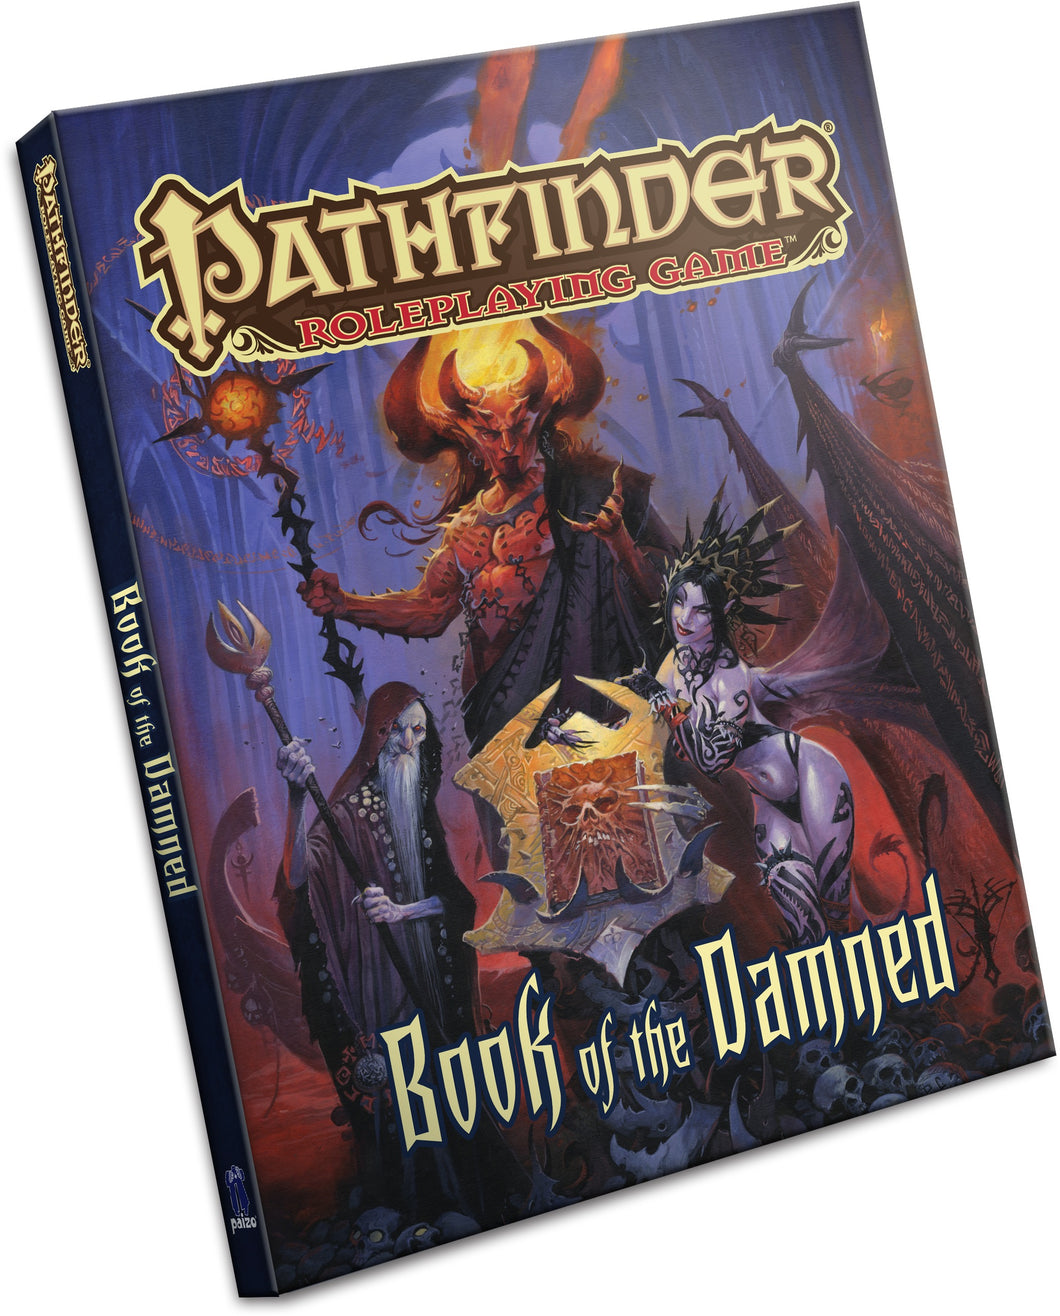 Pathfinder: Book | Book of the Damned